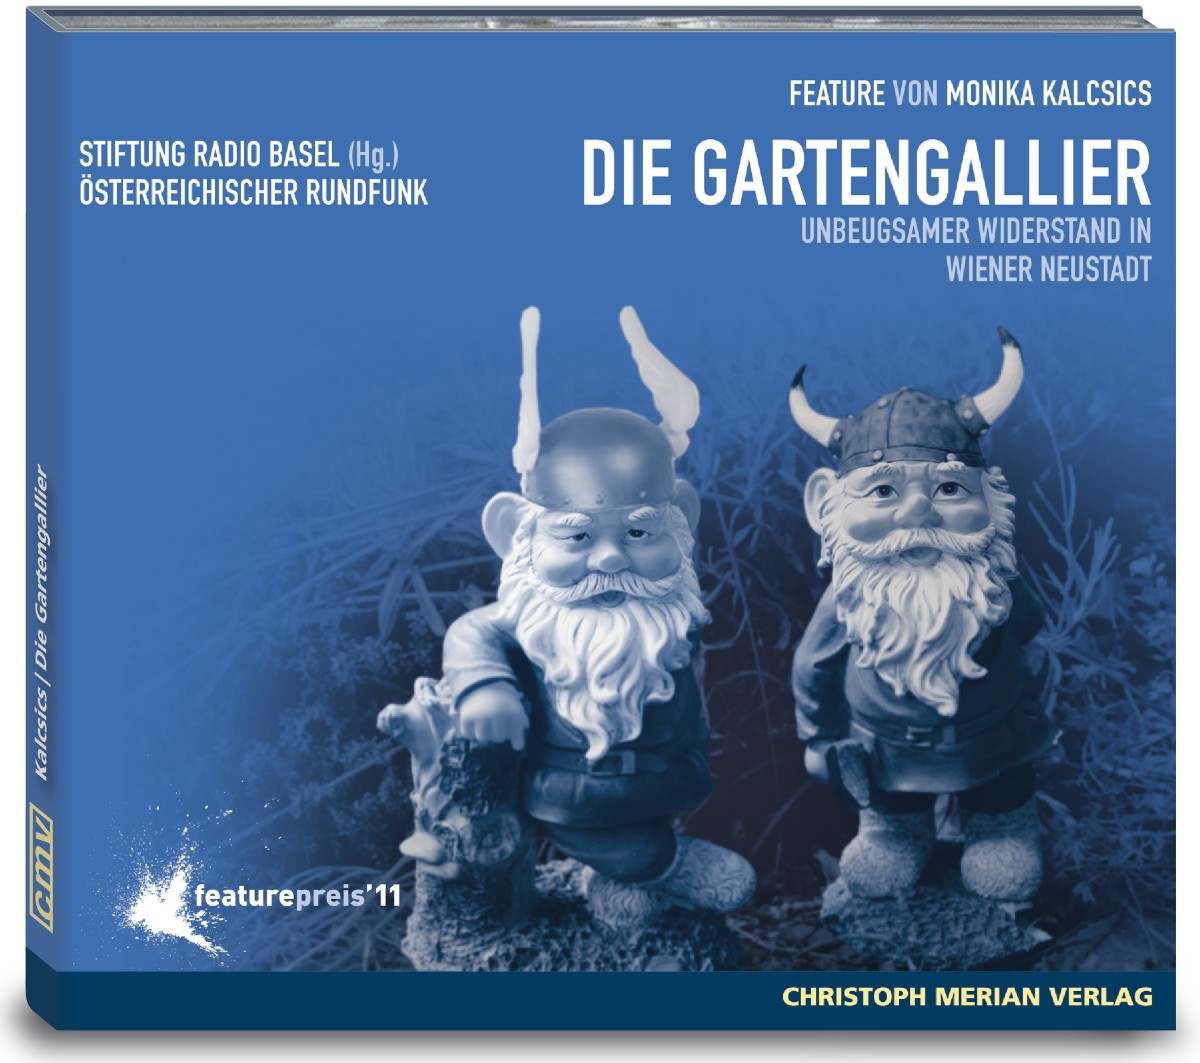 Featurepreis 2011 - Die Gartengallier